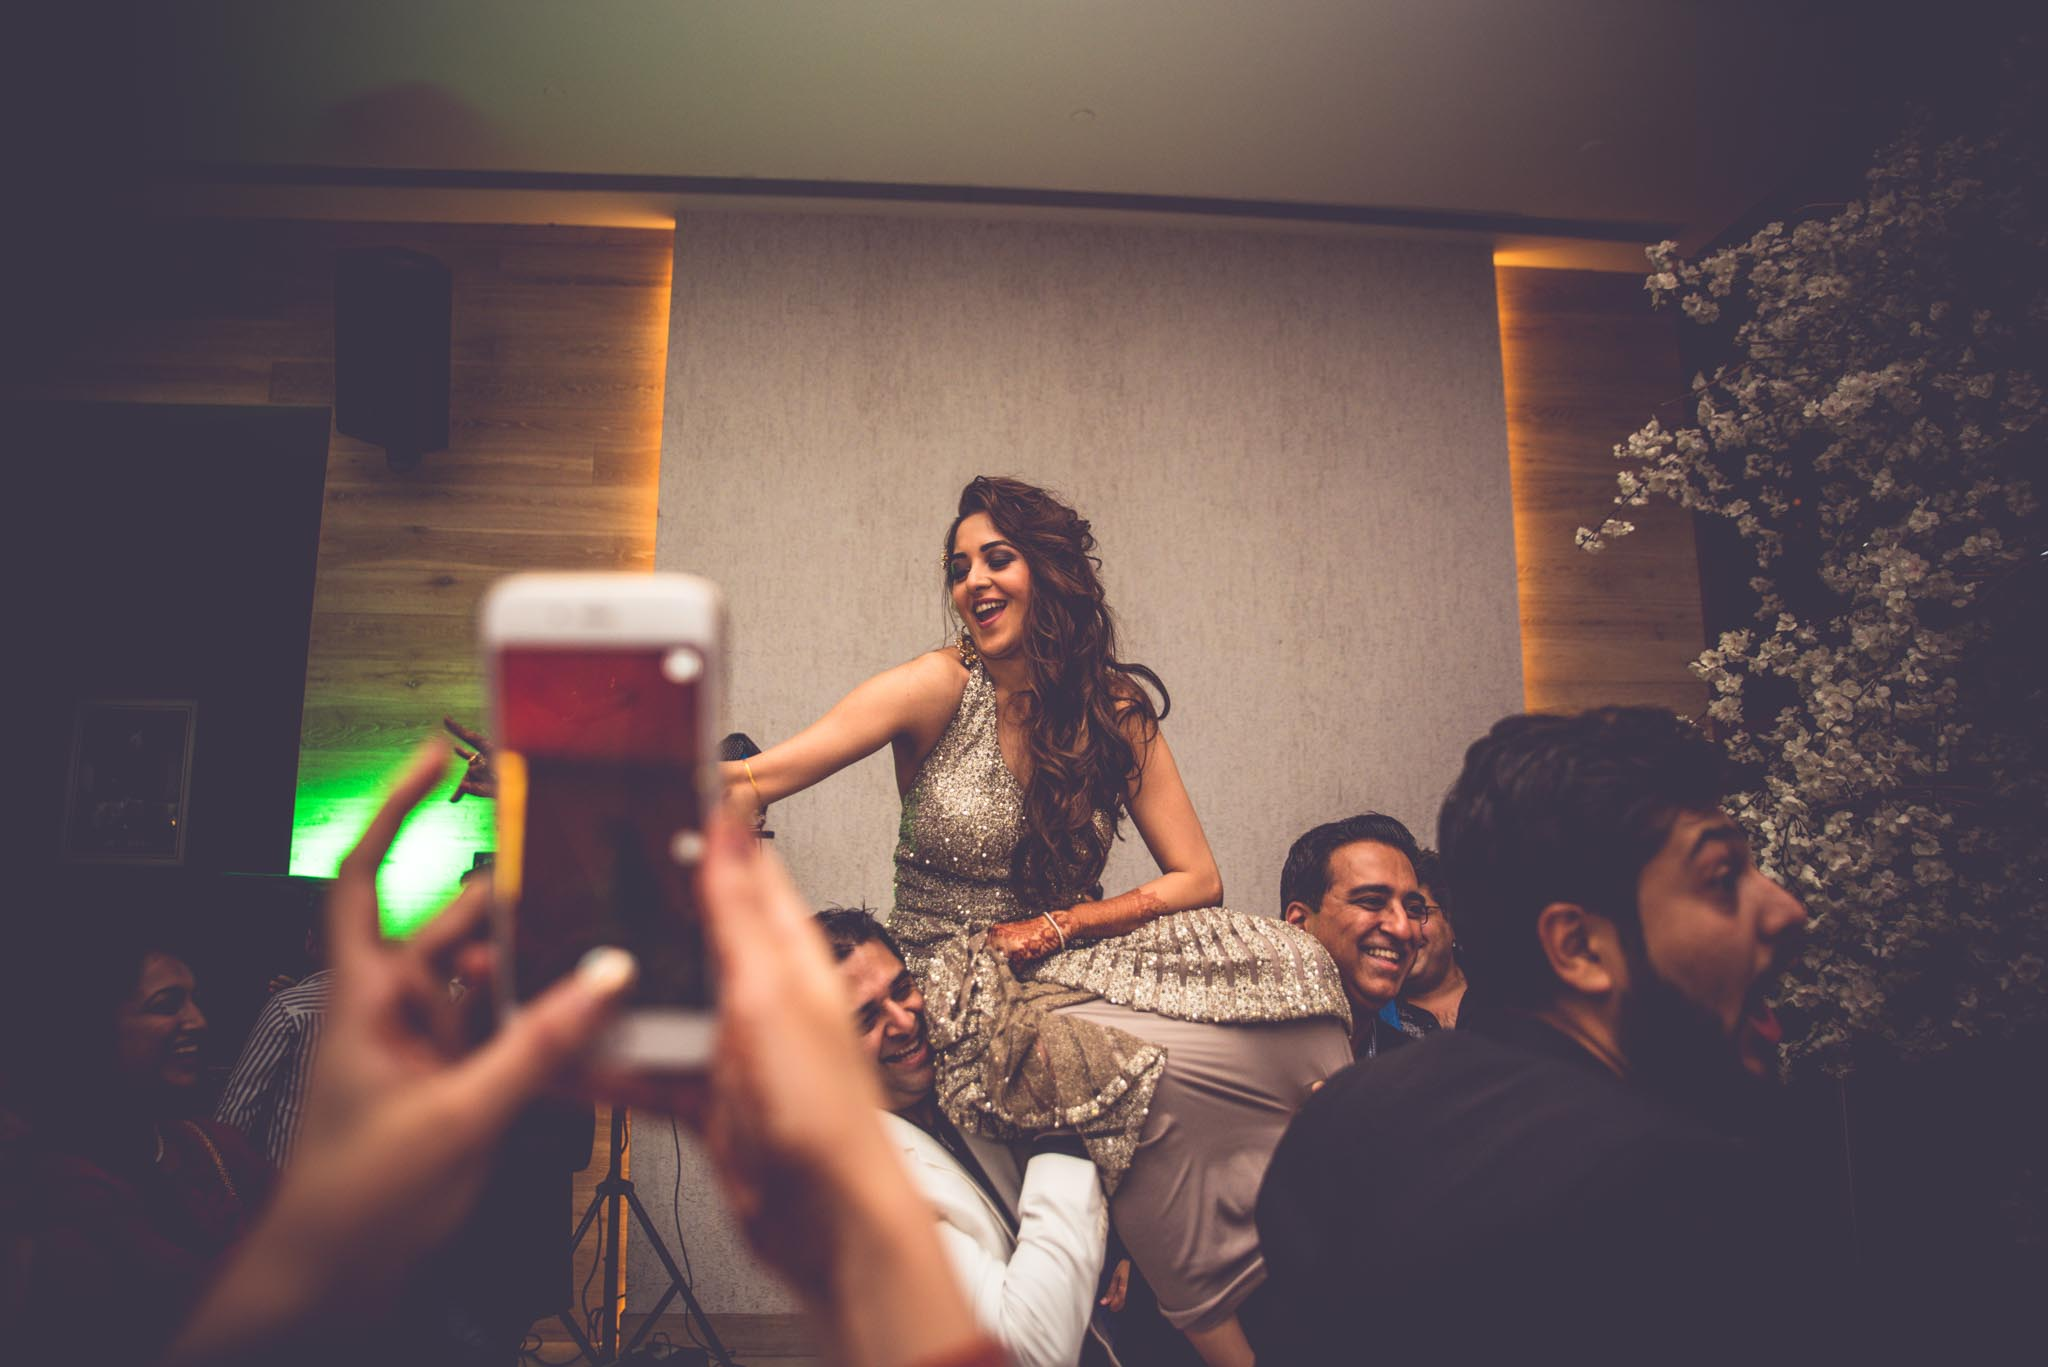 StRegis-Palladium-Mumbai-Candid-Wedding-Photography-15